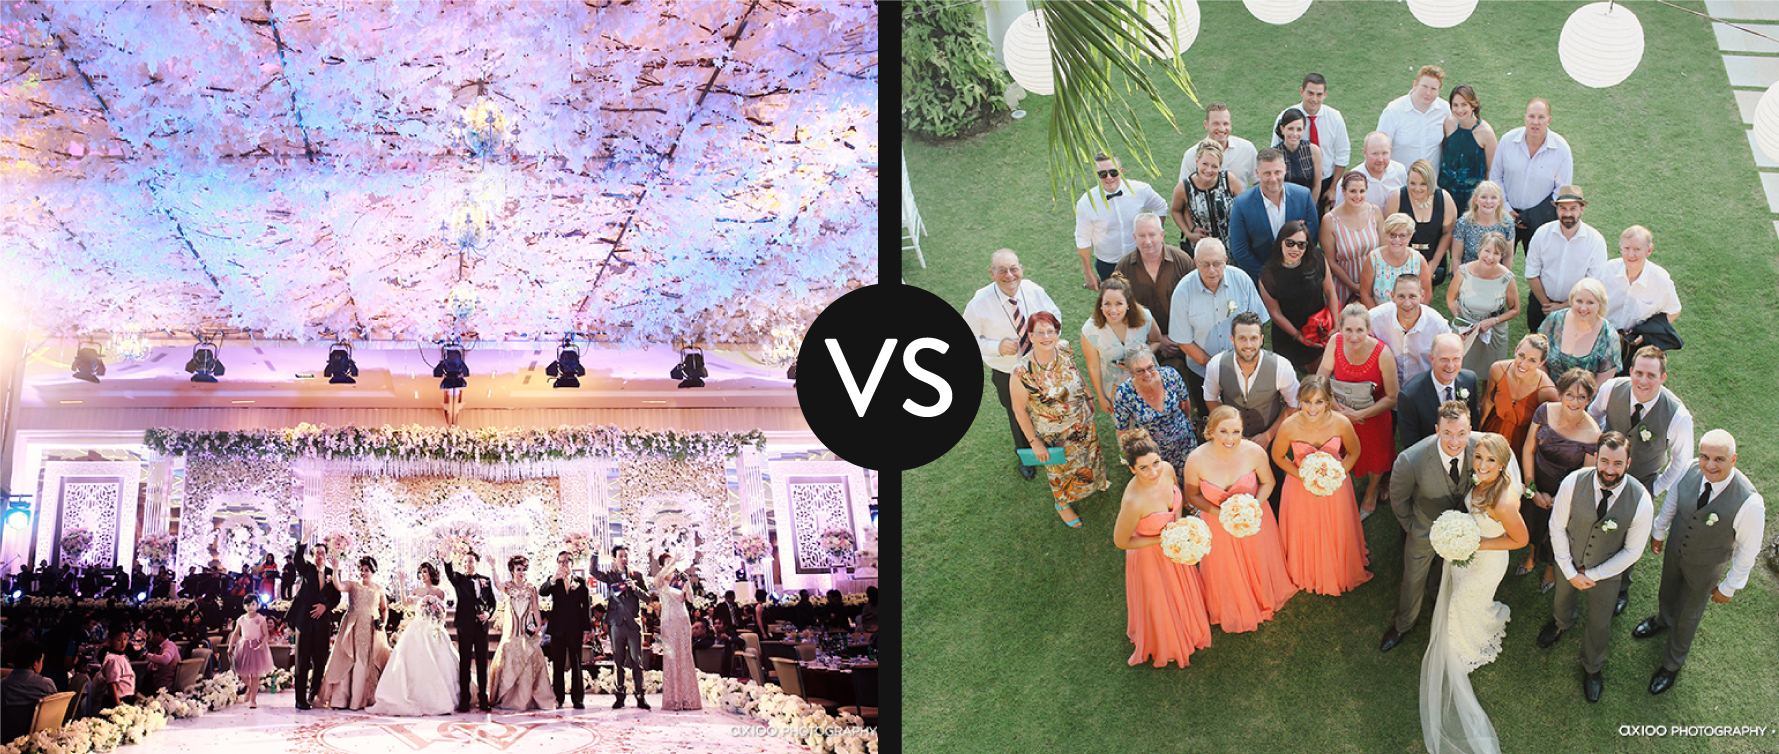 Big Weddings VS Intimate Weddings